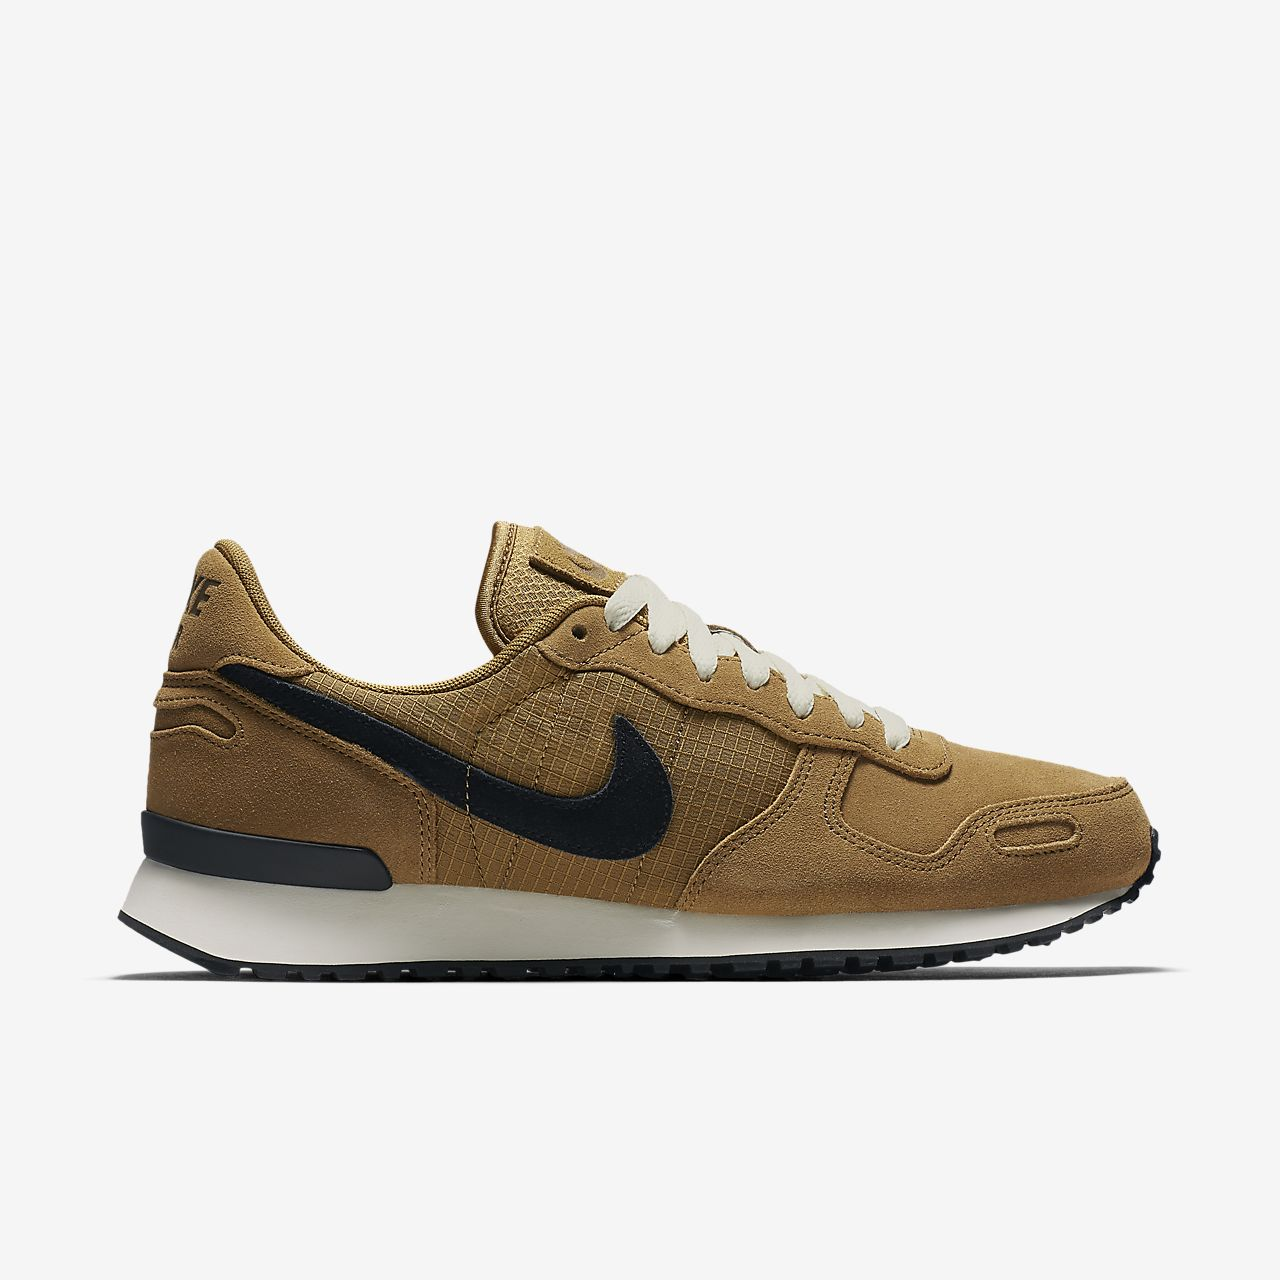 outlet store 8e367 1e35b ... Nike Air Vortex Men s Shoe